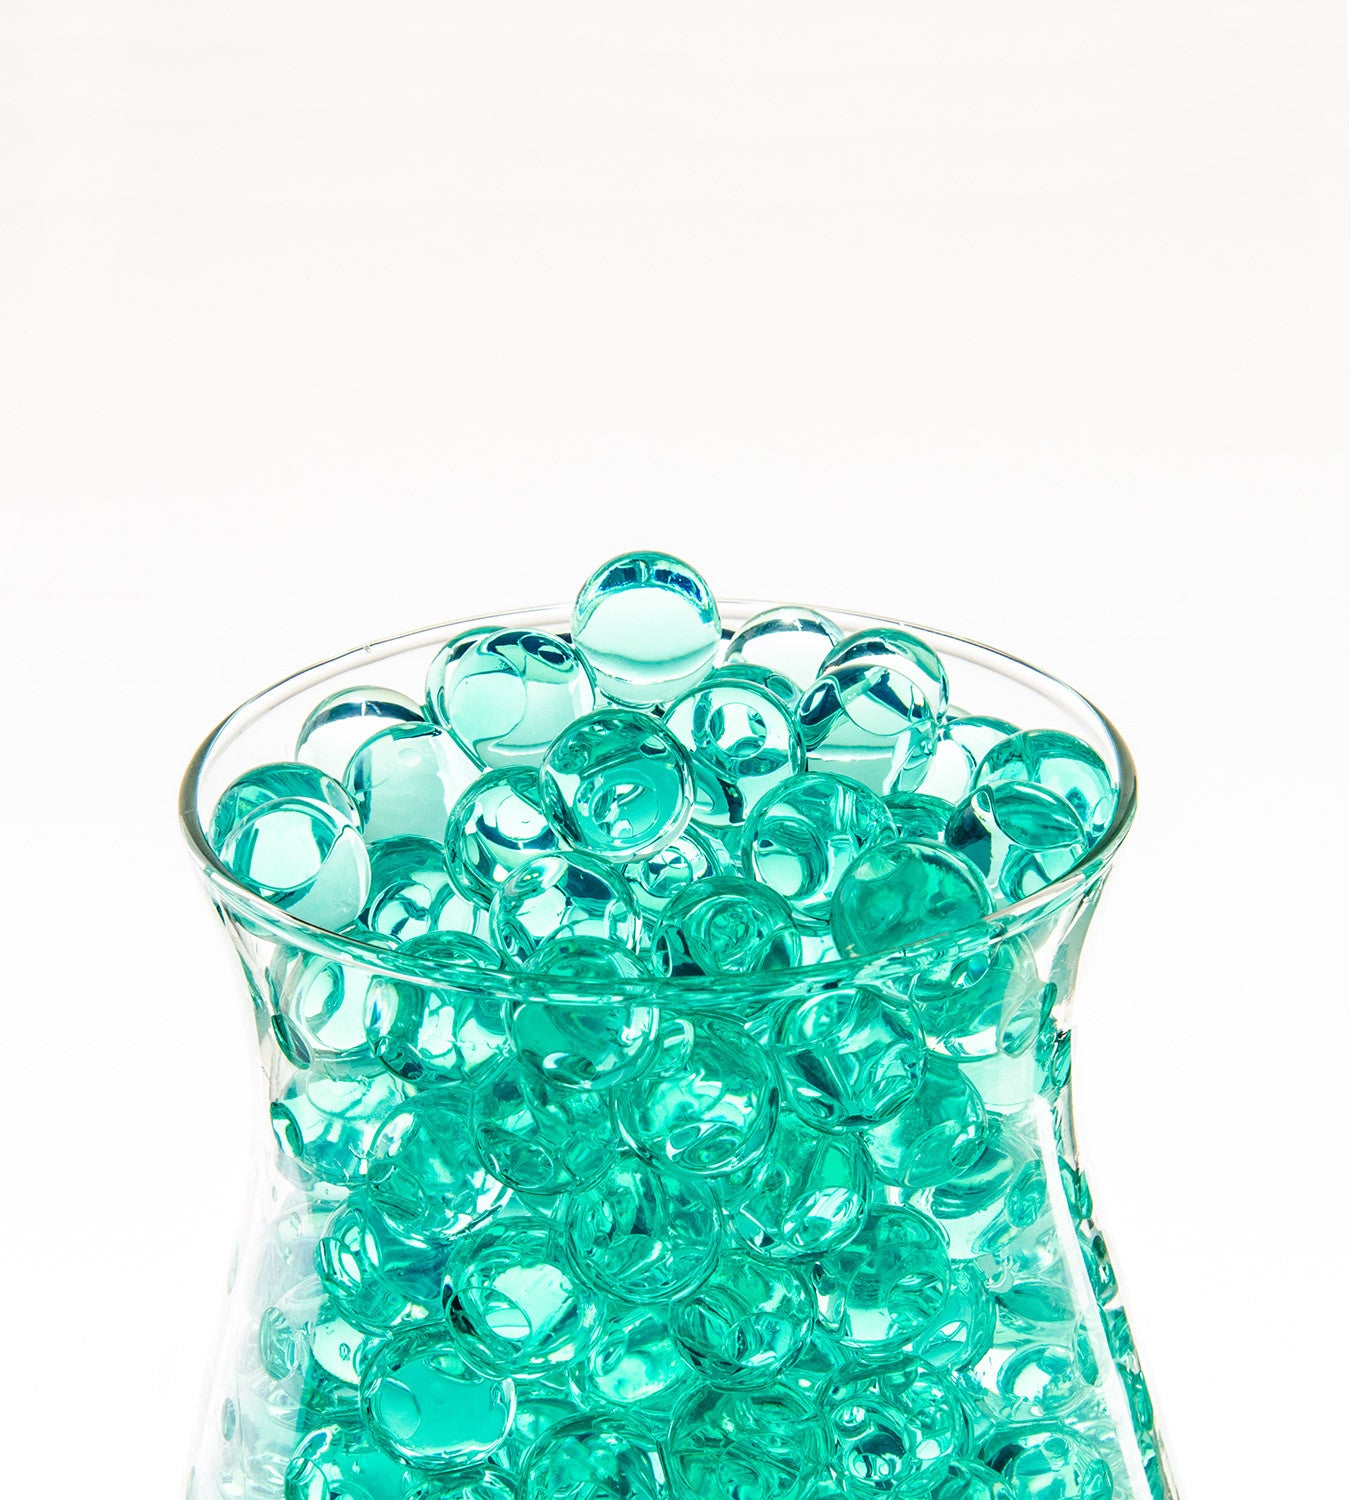 water bubbles gel beads for vase eventfull